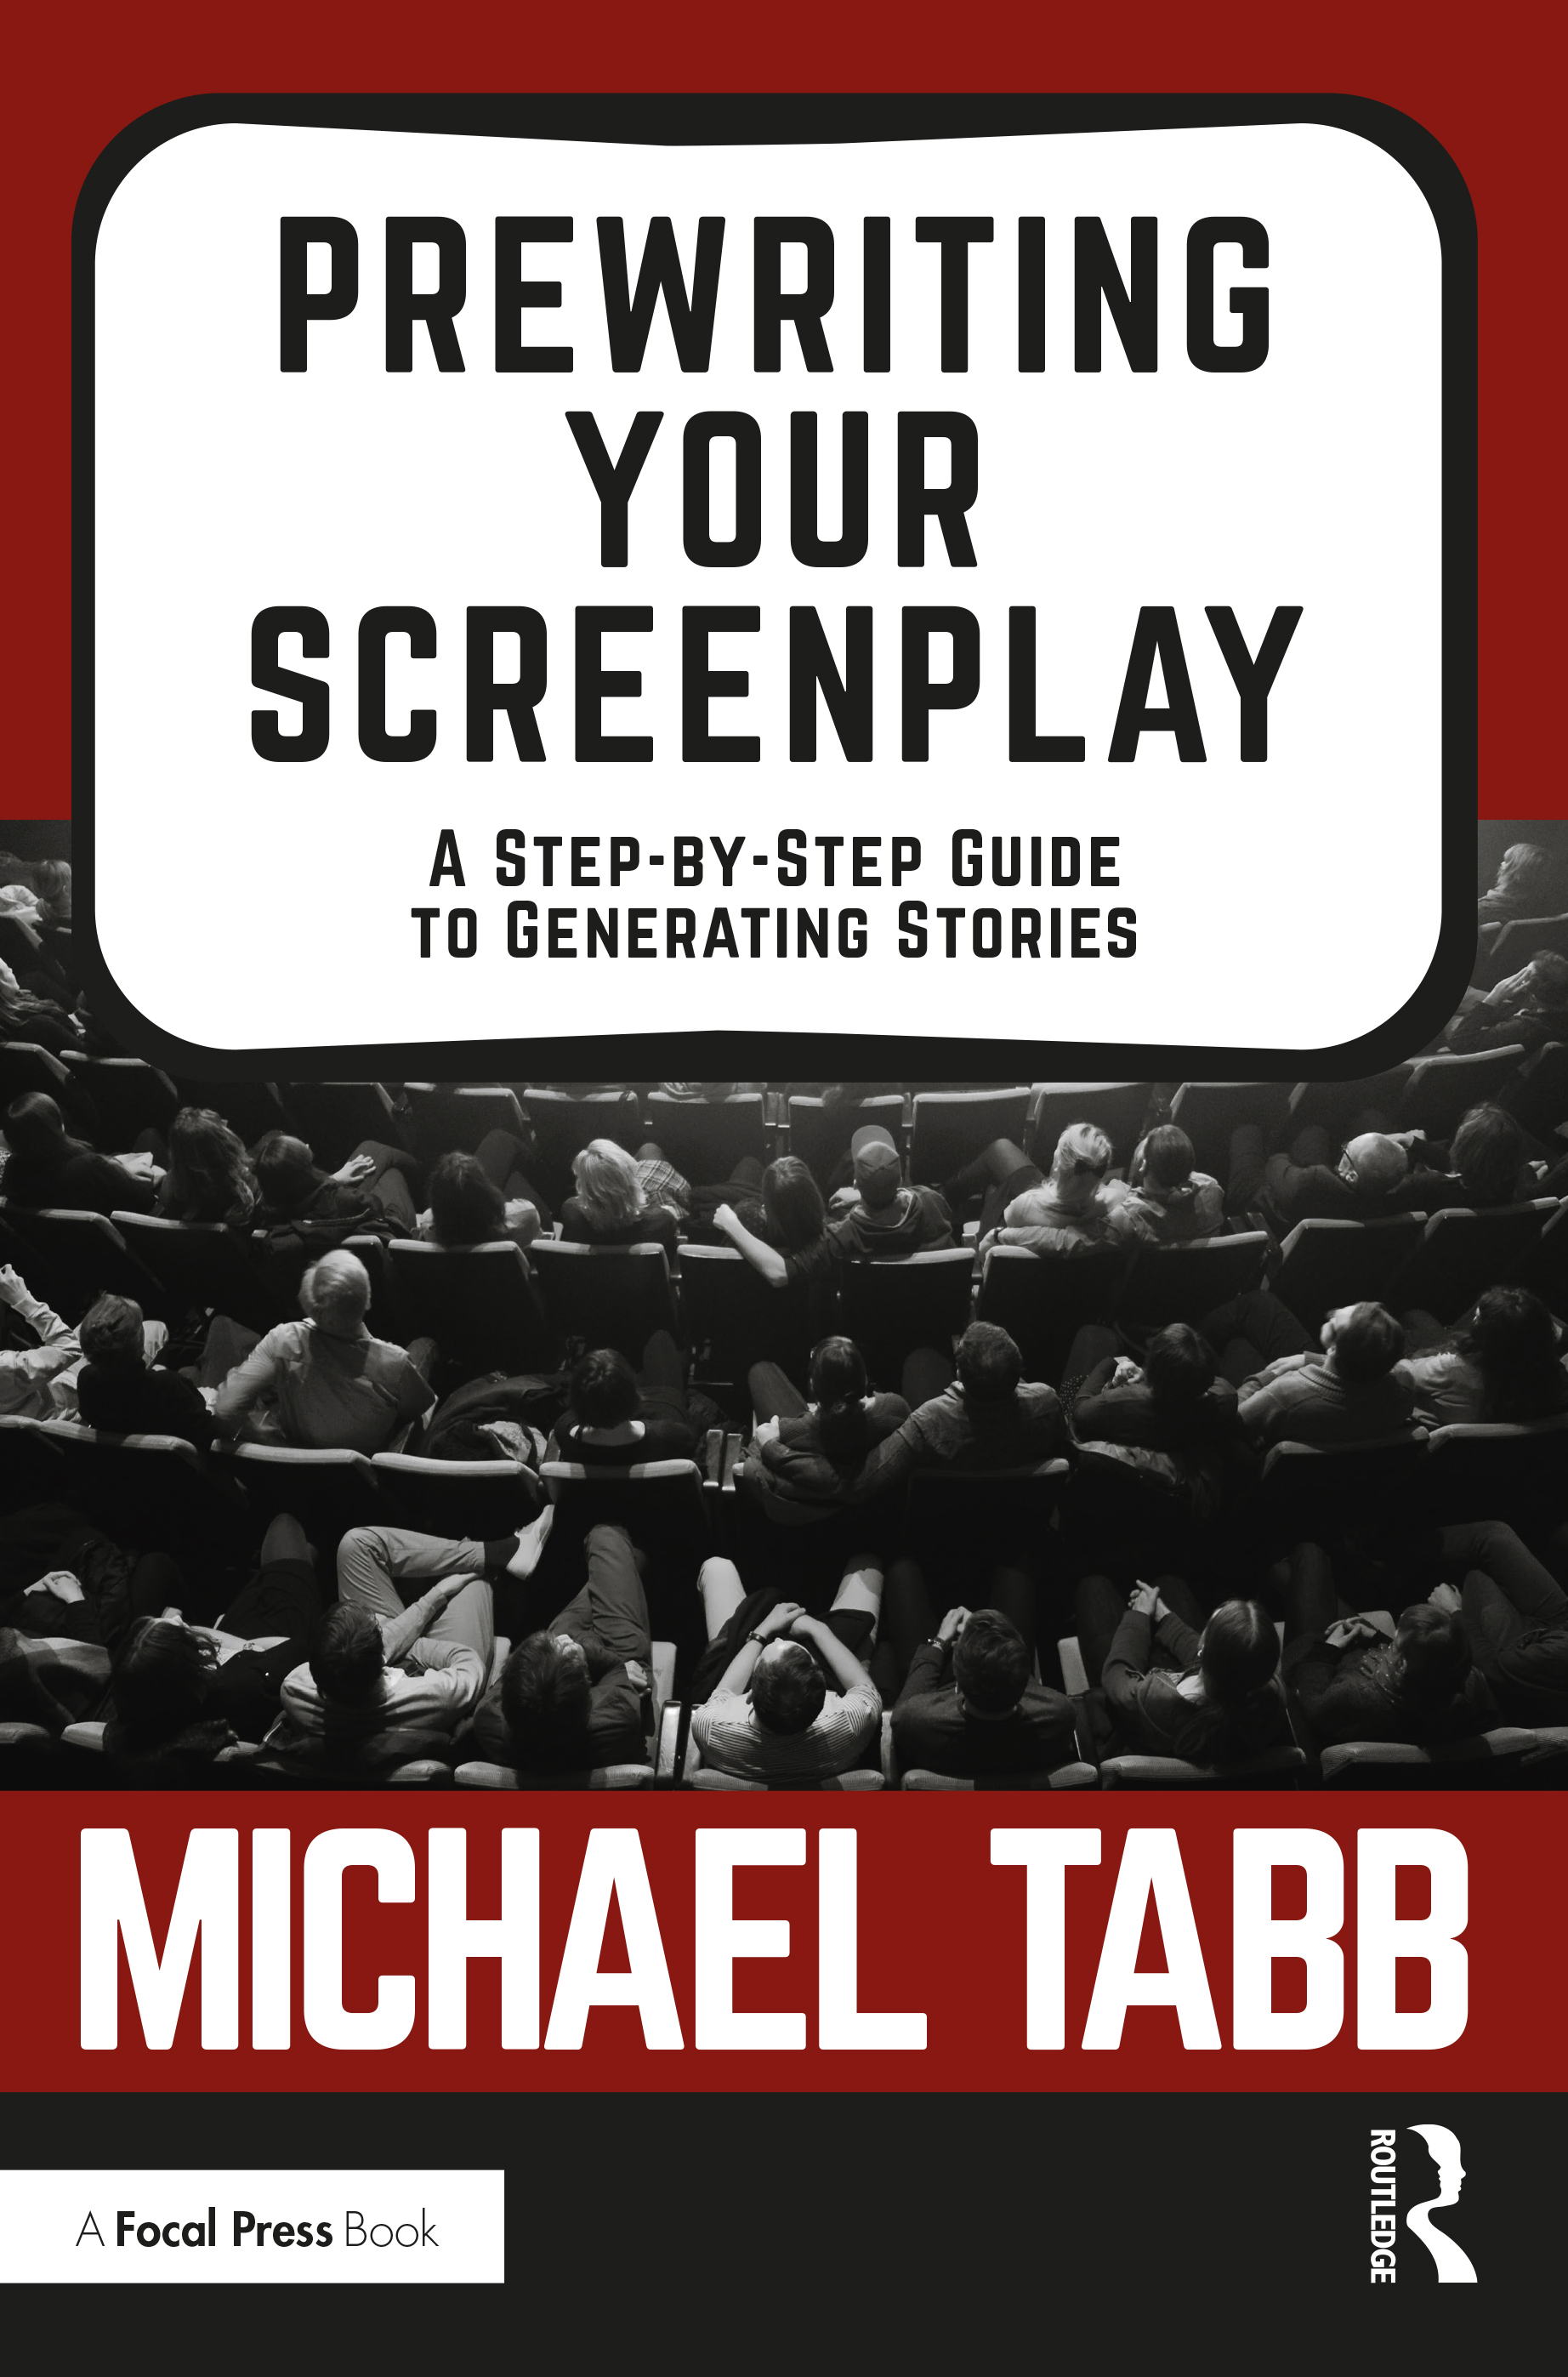 Prewriting Your Screenplay: A Step-by-Step Guide to Generating Stories book cover